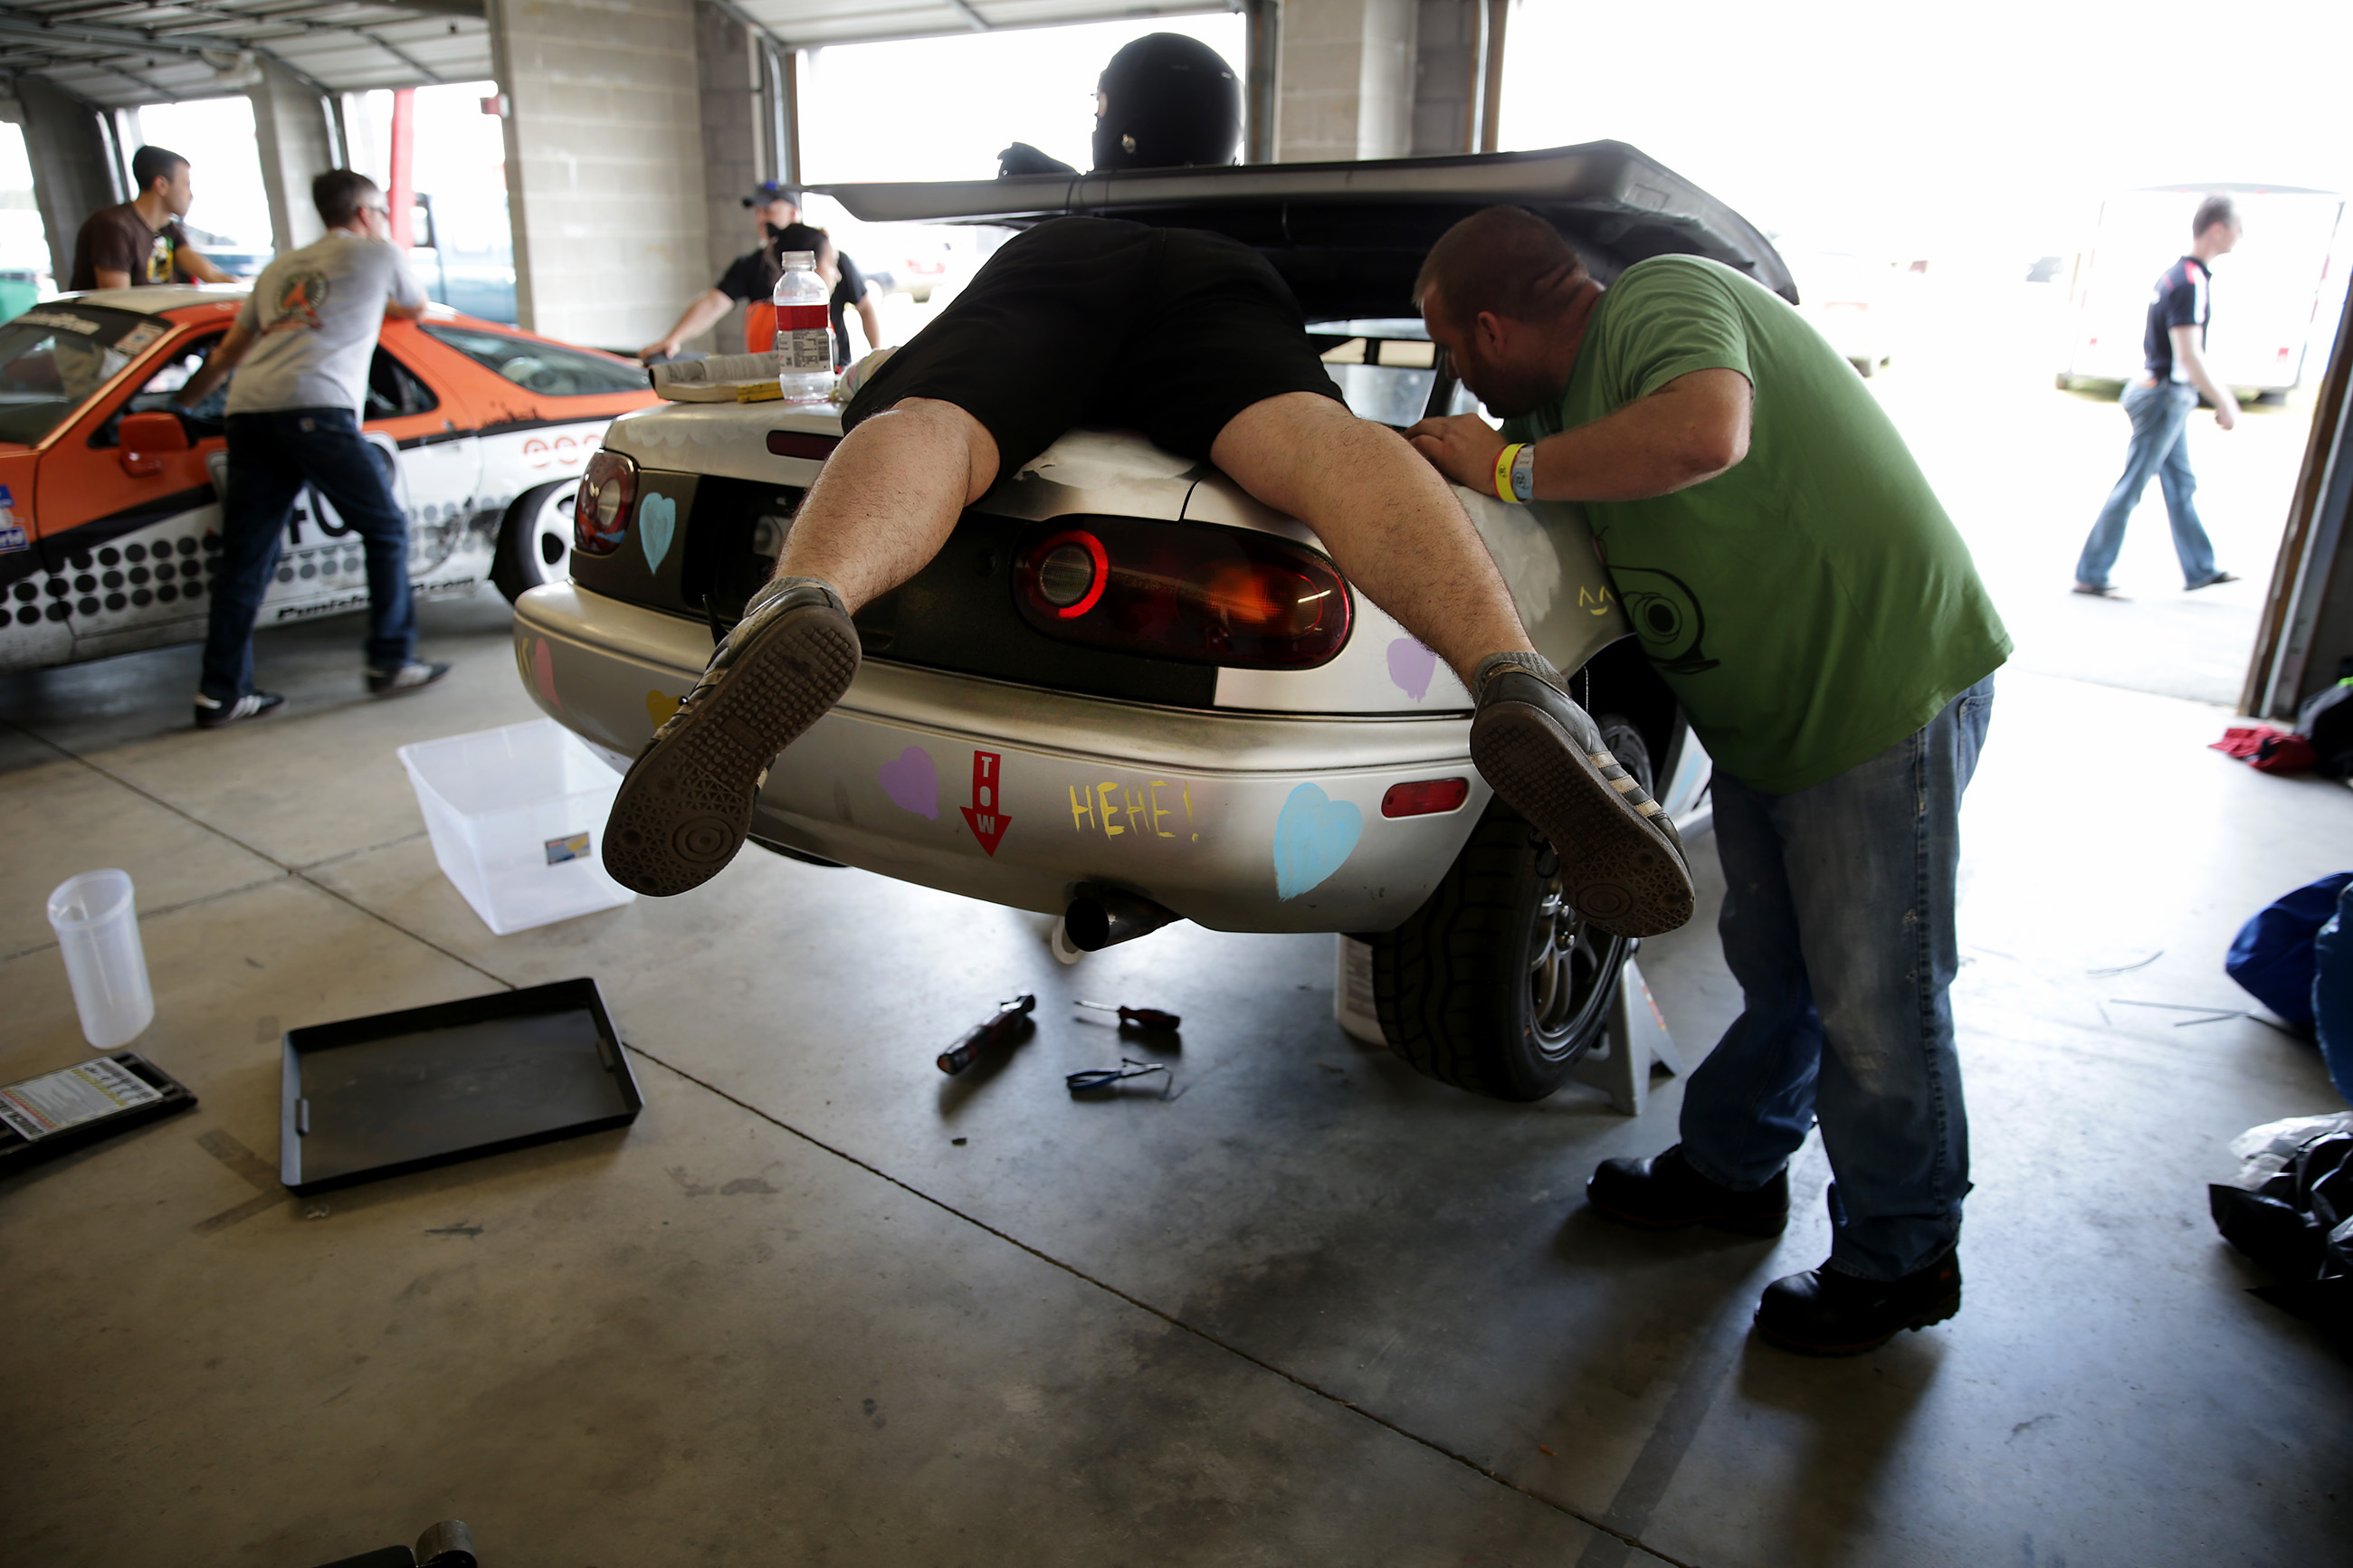 Bill Schonman, left, of Fleminington, NJ, and Mike Hartigan, of Westampton Township, NJ work on their car during the 24 Hours of Lemons: The Real Hoopties of New Jersey test and tech day at New Jersey Motorsports Park in Millville, NJ on May 11, 2018. DAVID MAIALETTI / Staff Photographer